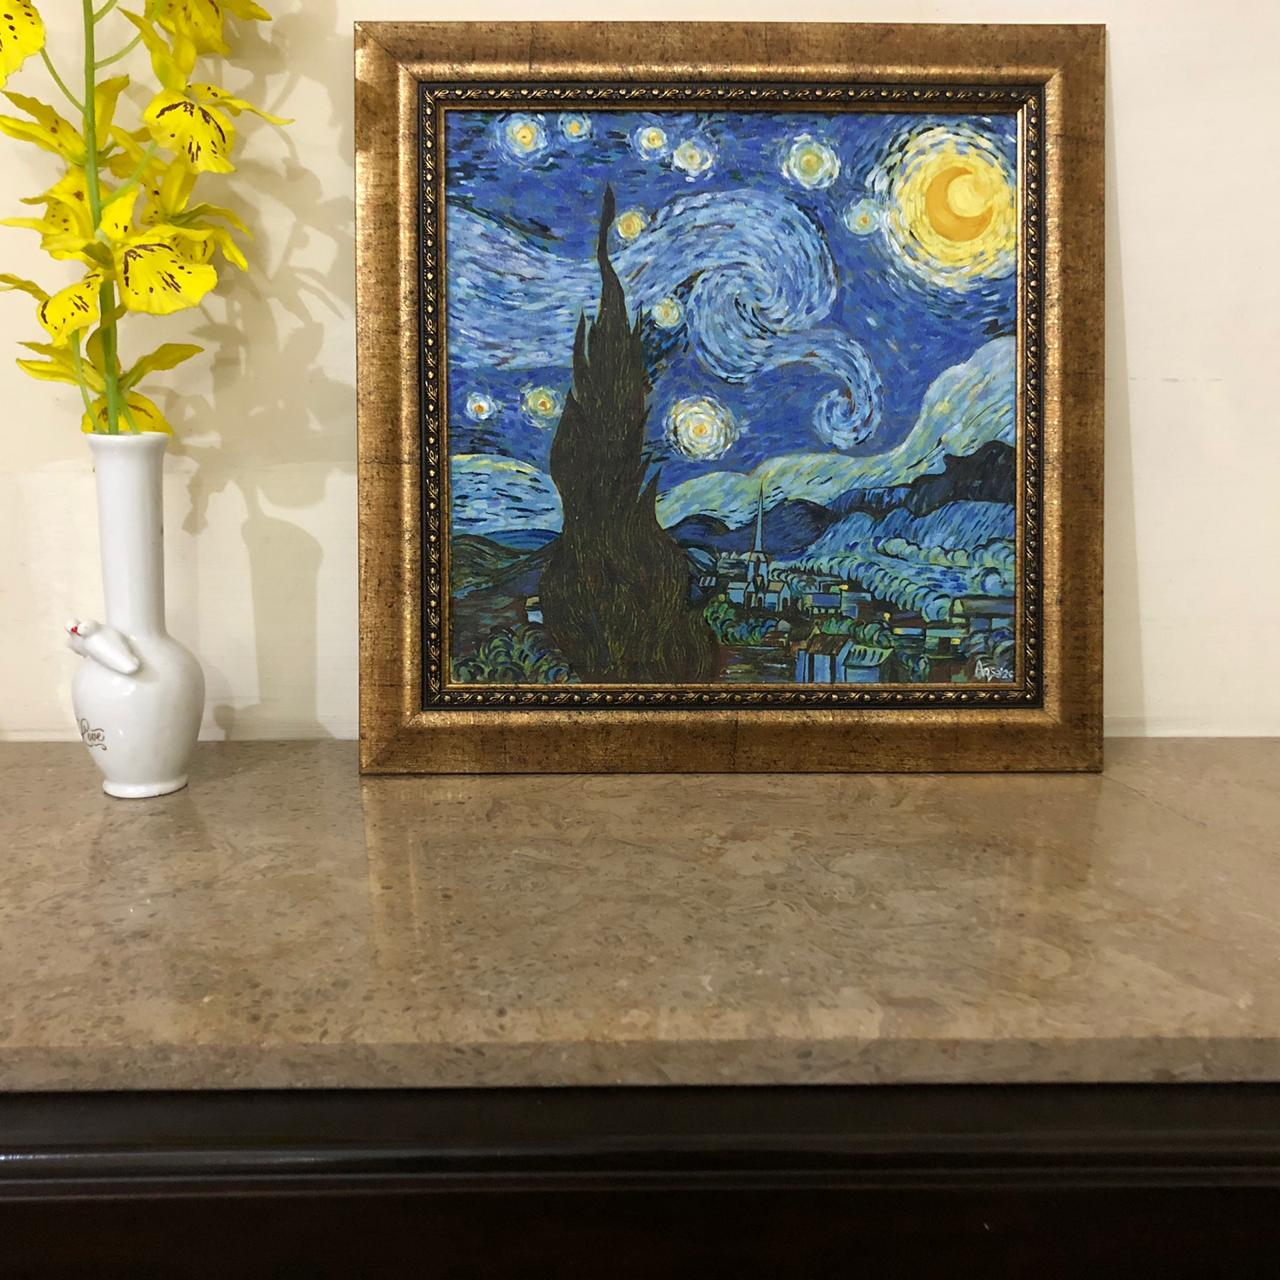 The Starry Night Wall Painting